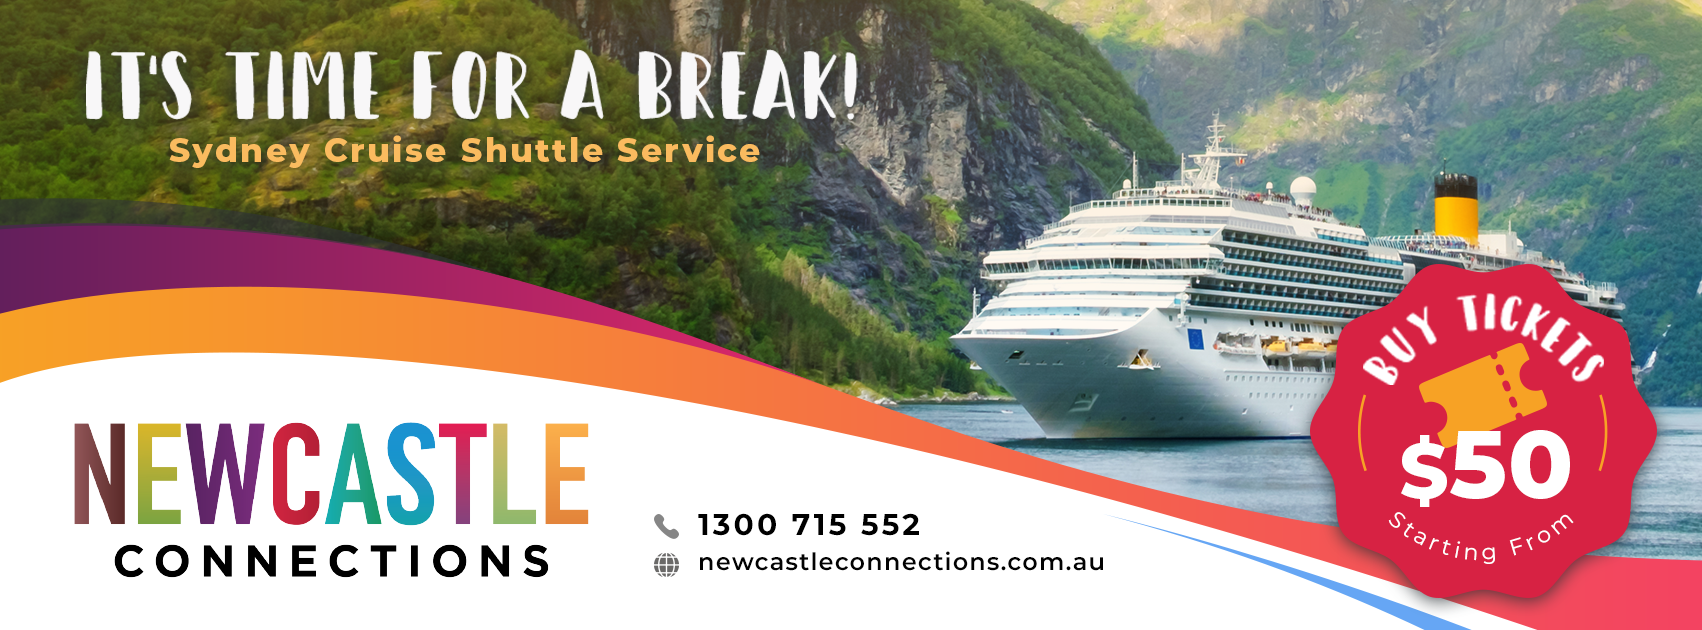 Newcastle Connections accommodation Blog Spot experiences hit hunter wine tours tailored v8 super cars wedding services accessibility needs central coast services event airport transfers cruise terminal private shuttle bus children schedule country cocktail vineyard grape vines boutique hunter valley Pokolbin lovedale beer accommodation holiday travel drive happy cabby sporting team weekend romantic couples midweek girls race Sydney transport mantra mecure hotel spa bayview belmont 500 hamilton executive apartments keith urban entertainment centre long lunch Mediterranean money tax return accessible plane fly child children kids price P&O ski resort canada panorama springs lodge Blogs gadgets bag accessory item buy water bottle head rest pillow jeans weight wifi router charger iron logo jetstar qantas 2018 2019 2020